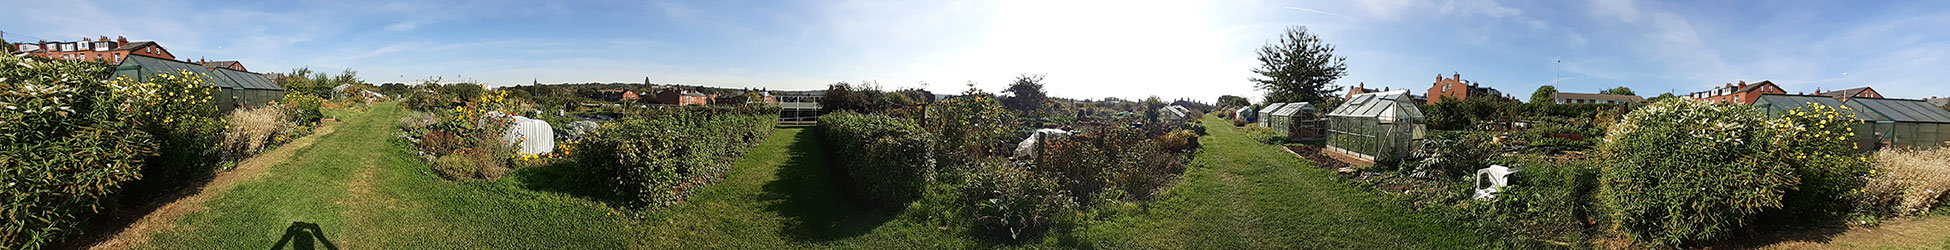 allotment operation